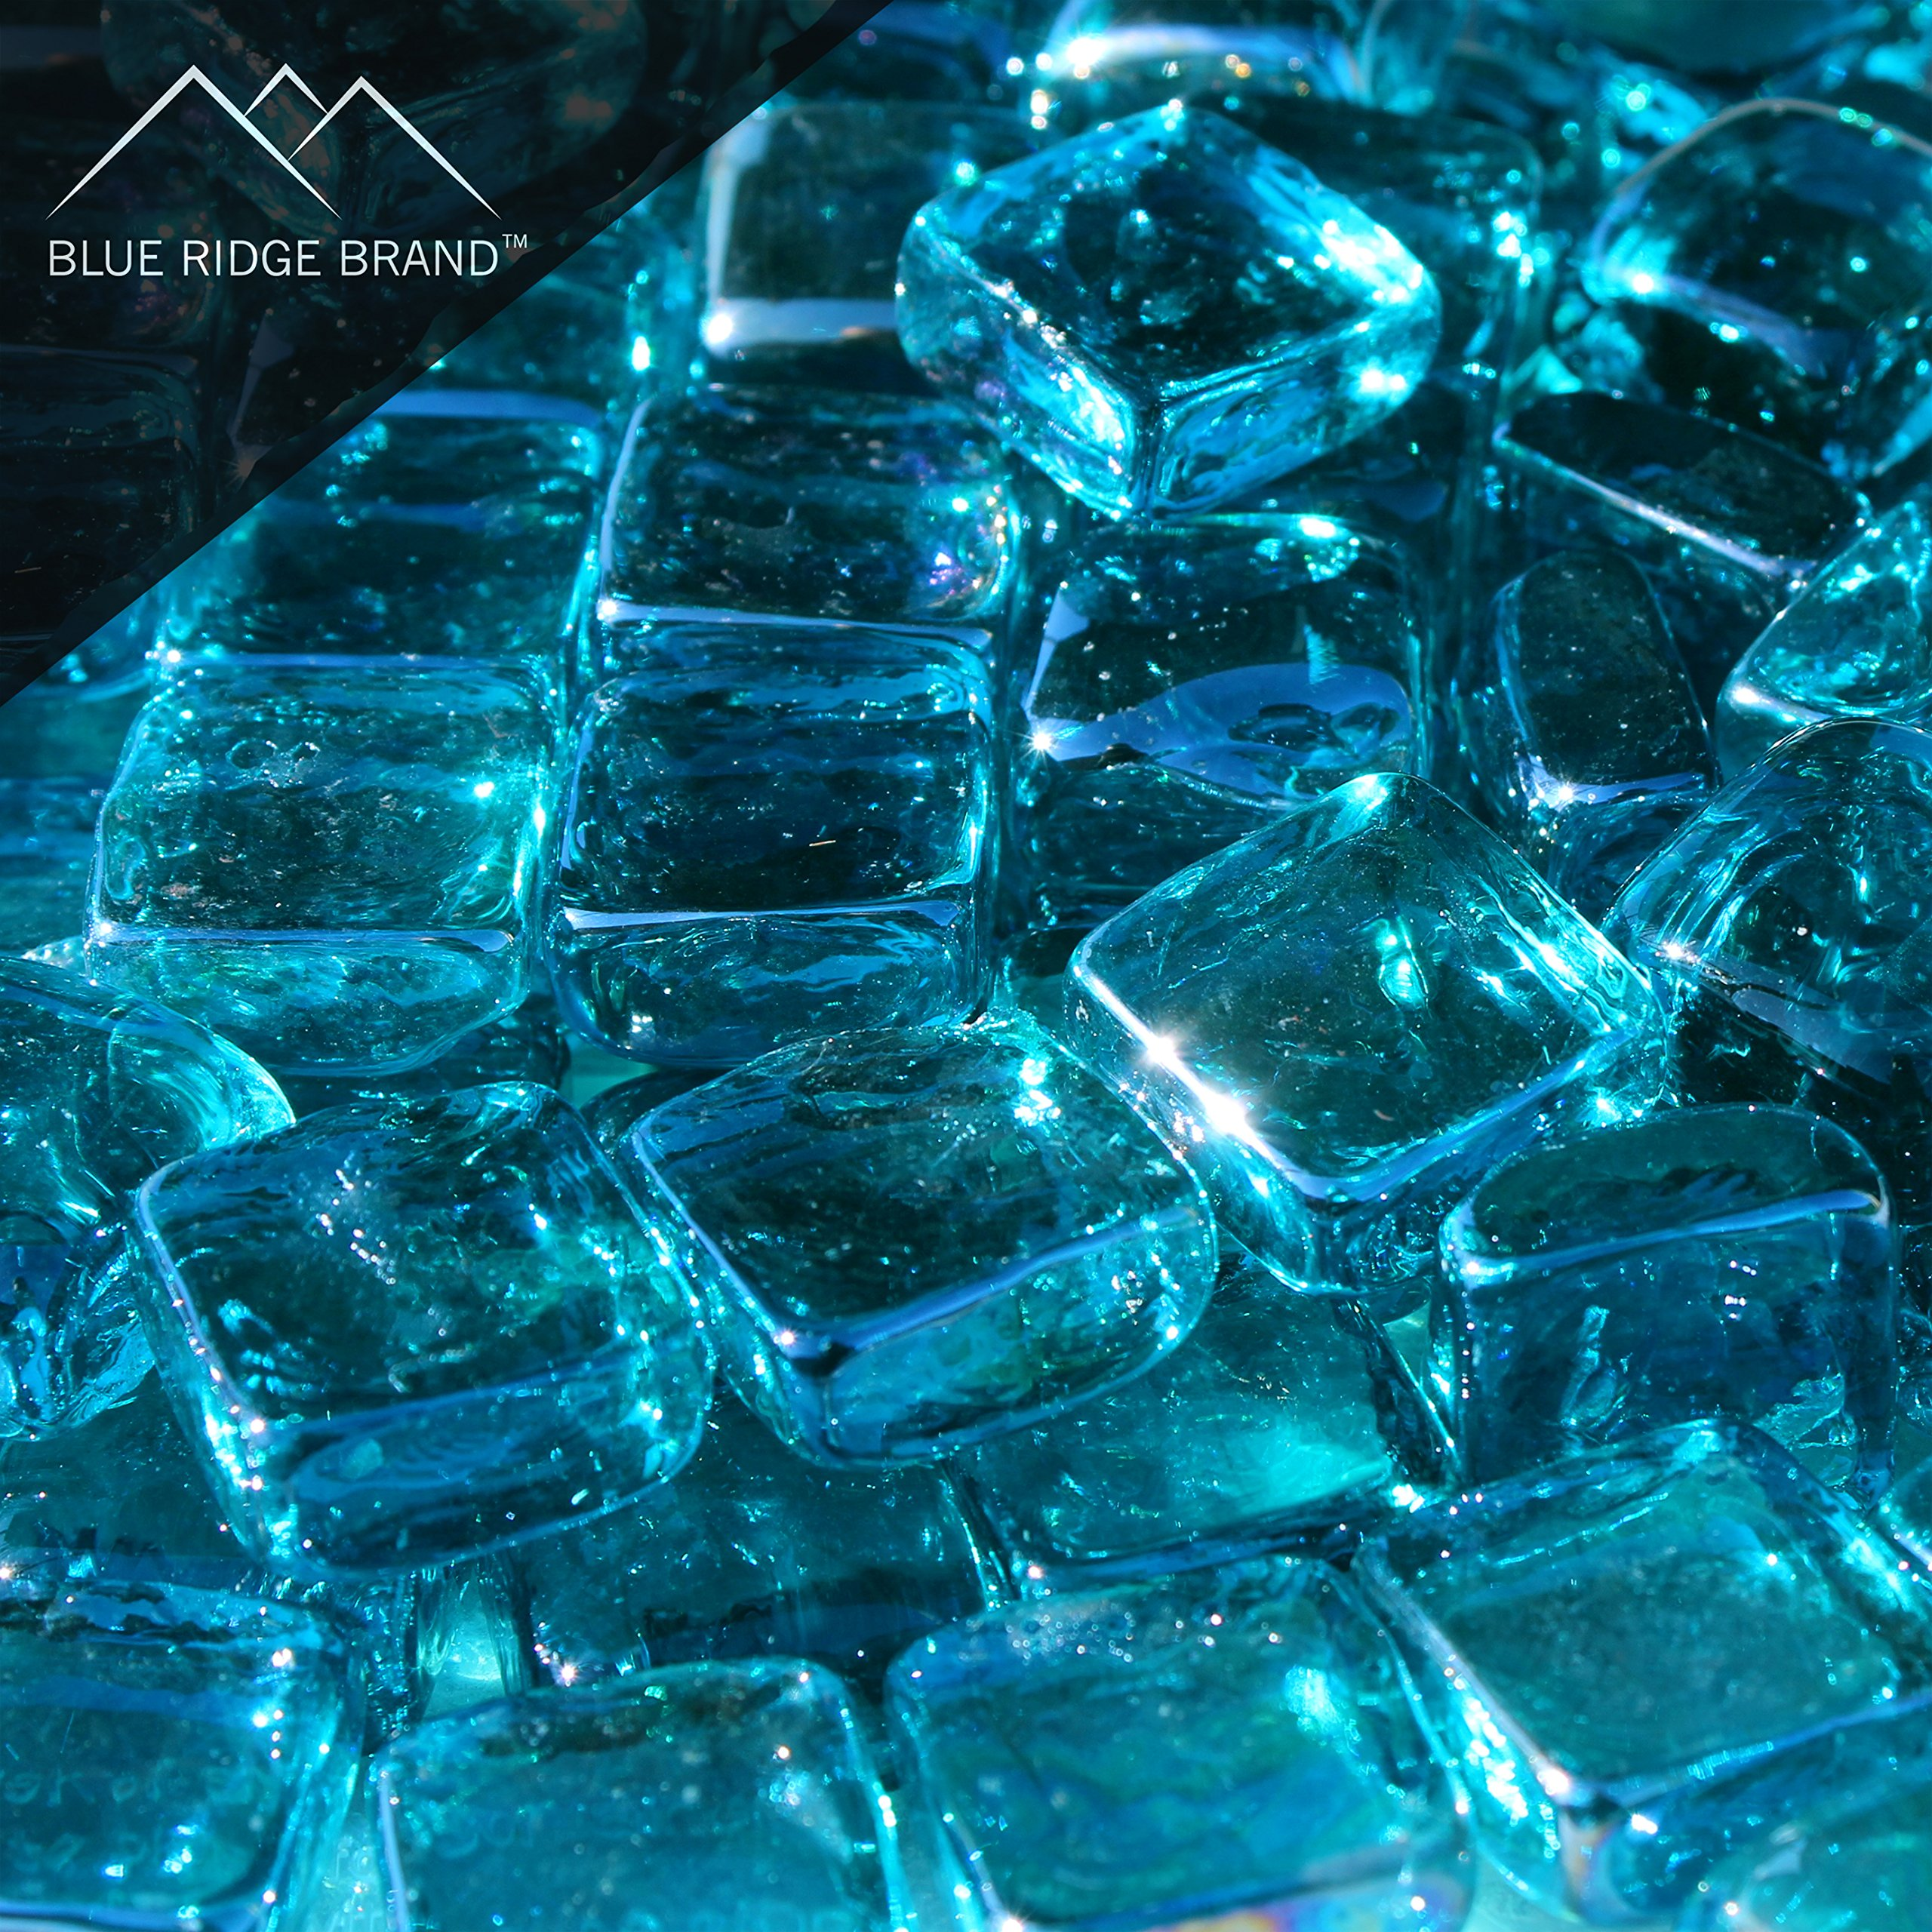 Blue Ridge Brand trade; Aqua Reflective Fire Glass Cubes - 20-Pound Professional Grade Fire Pit Glass - 3/4'' Reflective Glass for Fire Pit and Landscaping by Blue Ridge Brand (Image #1)